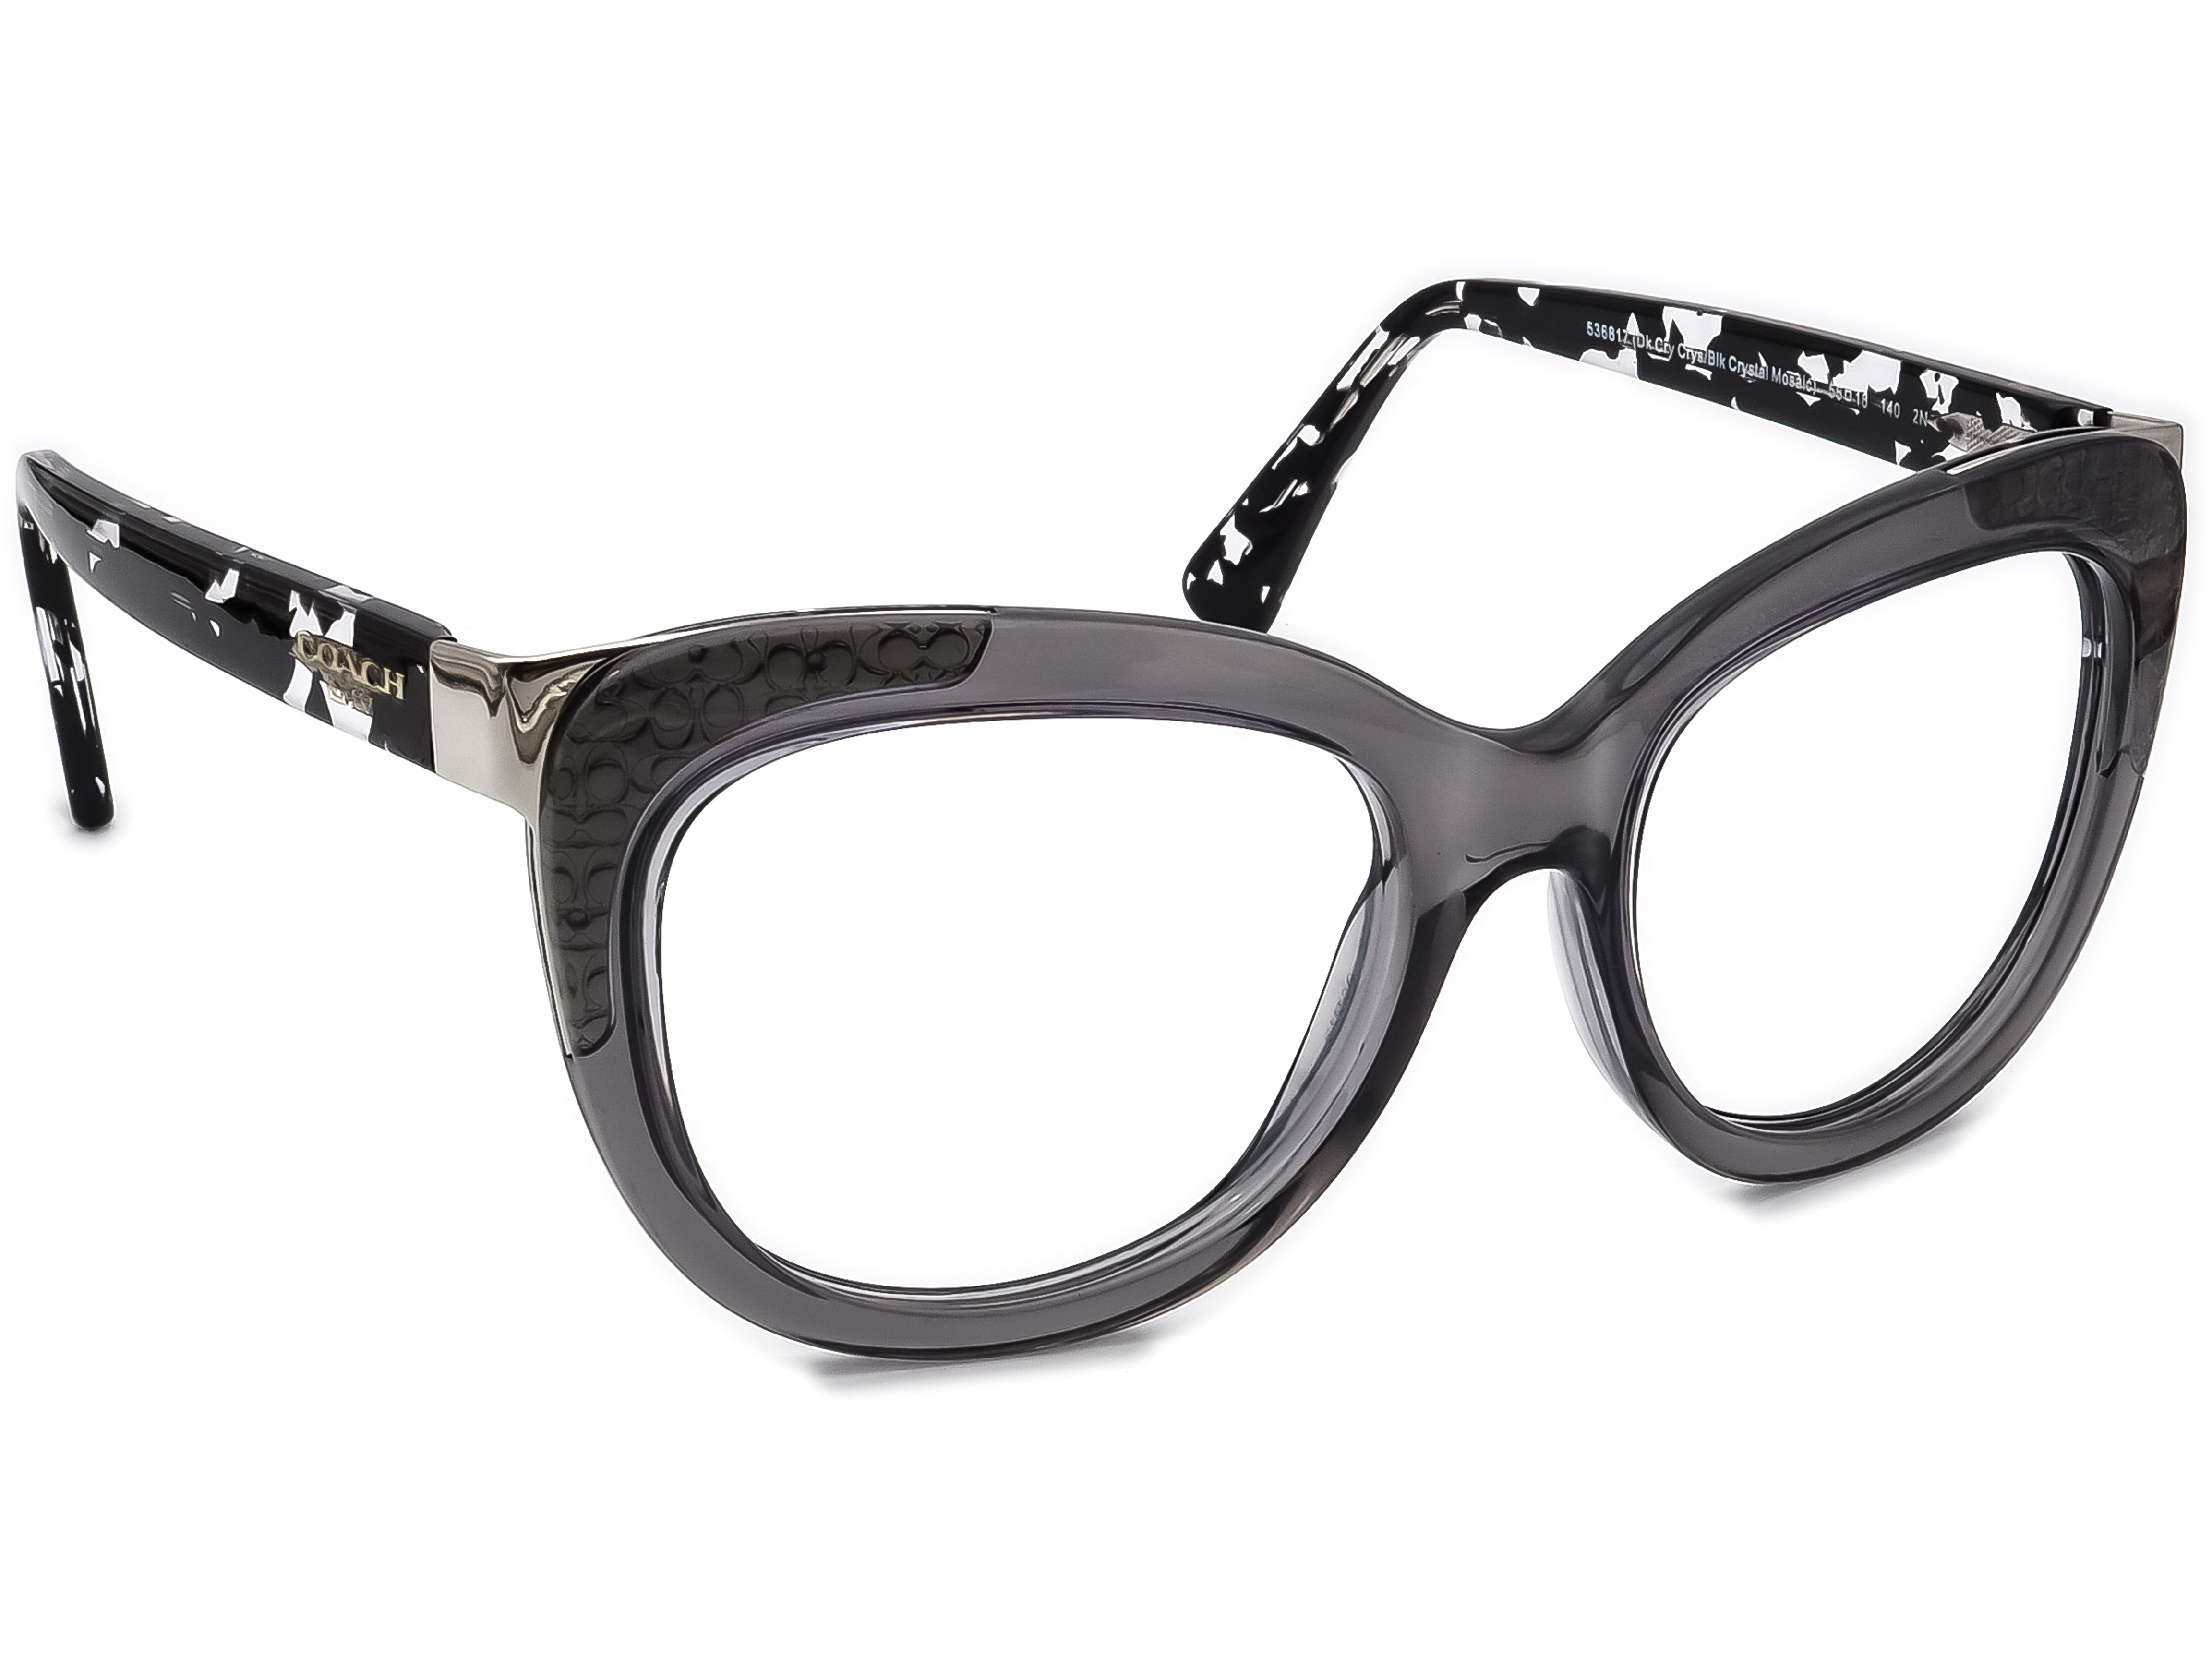 Coach HC 8171 L152 536817 Dk Cry Crys/Blk Crystal Oversized Mosaic Sunglasses Frame Only